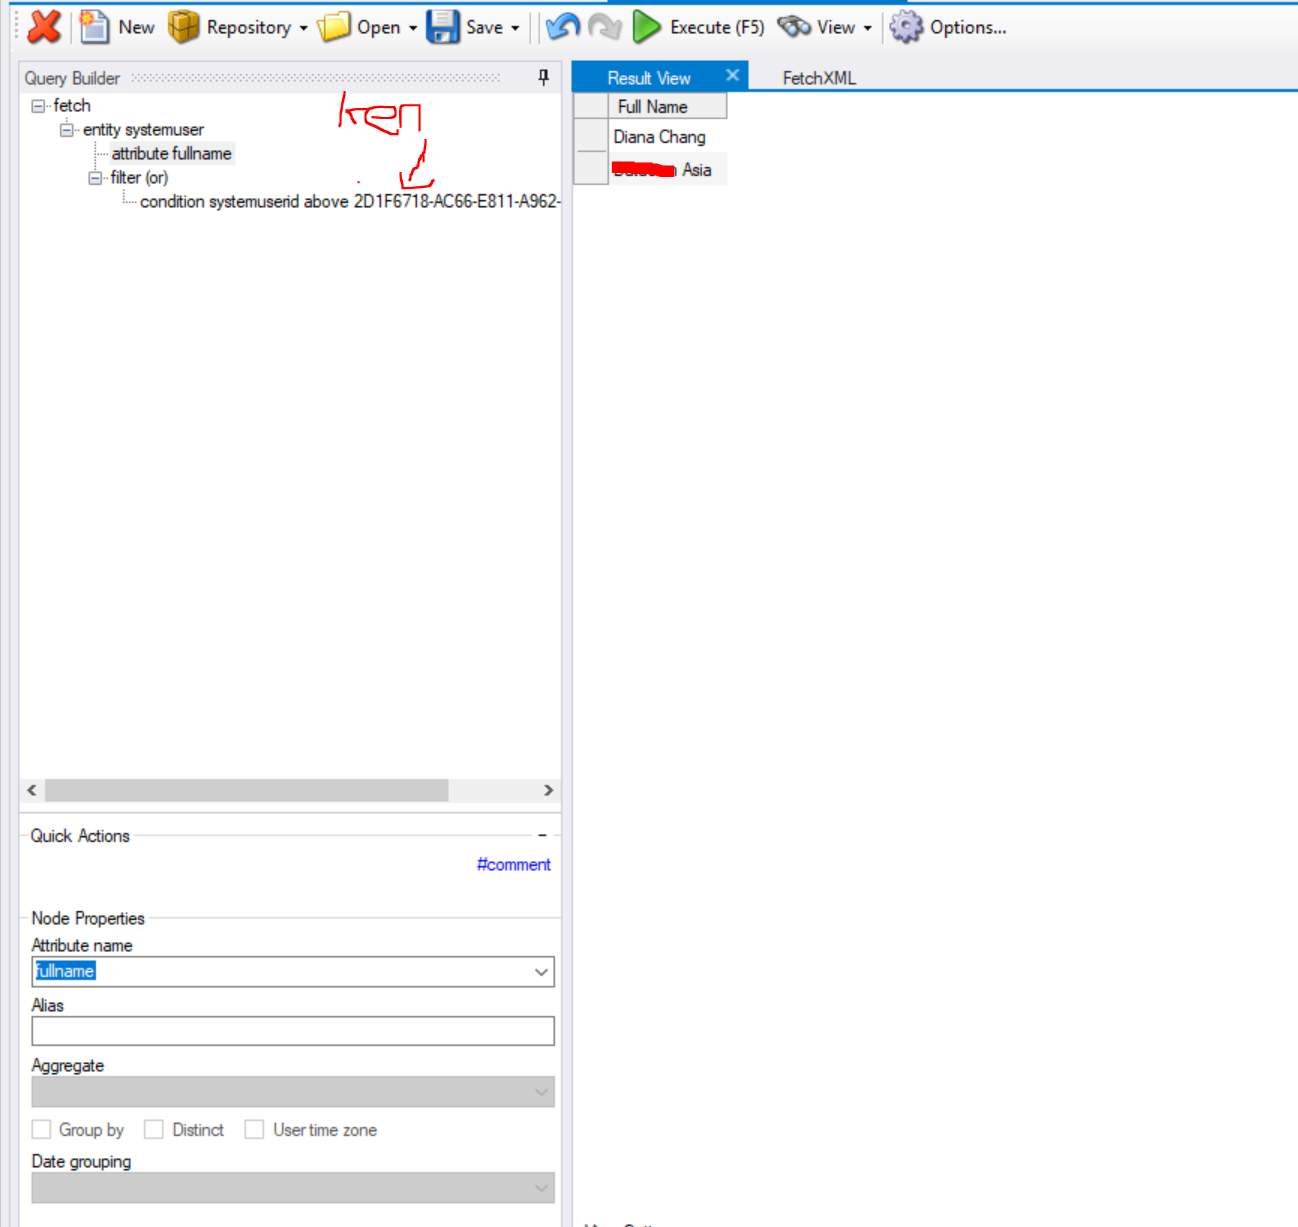 Fetching xml for ssrs report ms crm - Microsoft Dynamics CRM